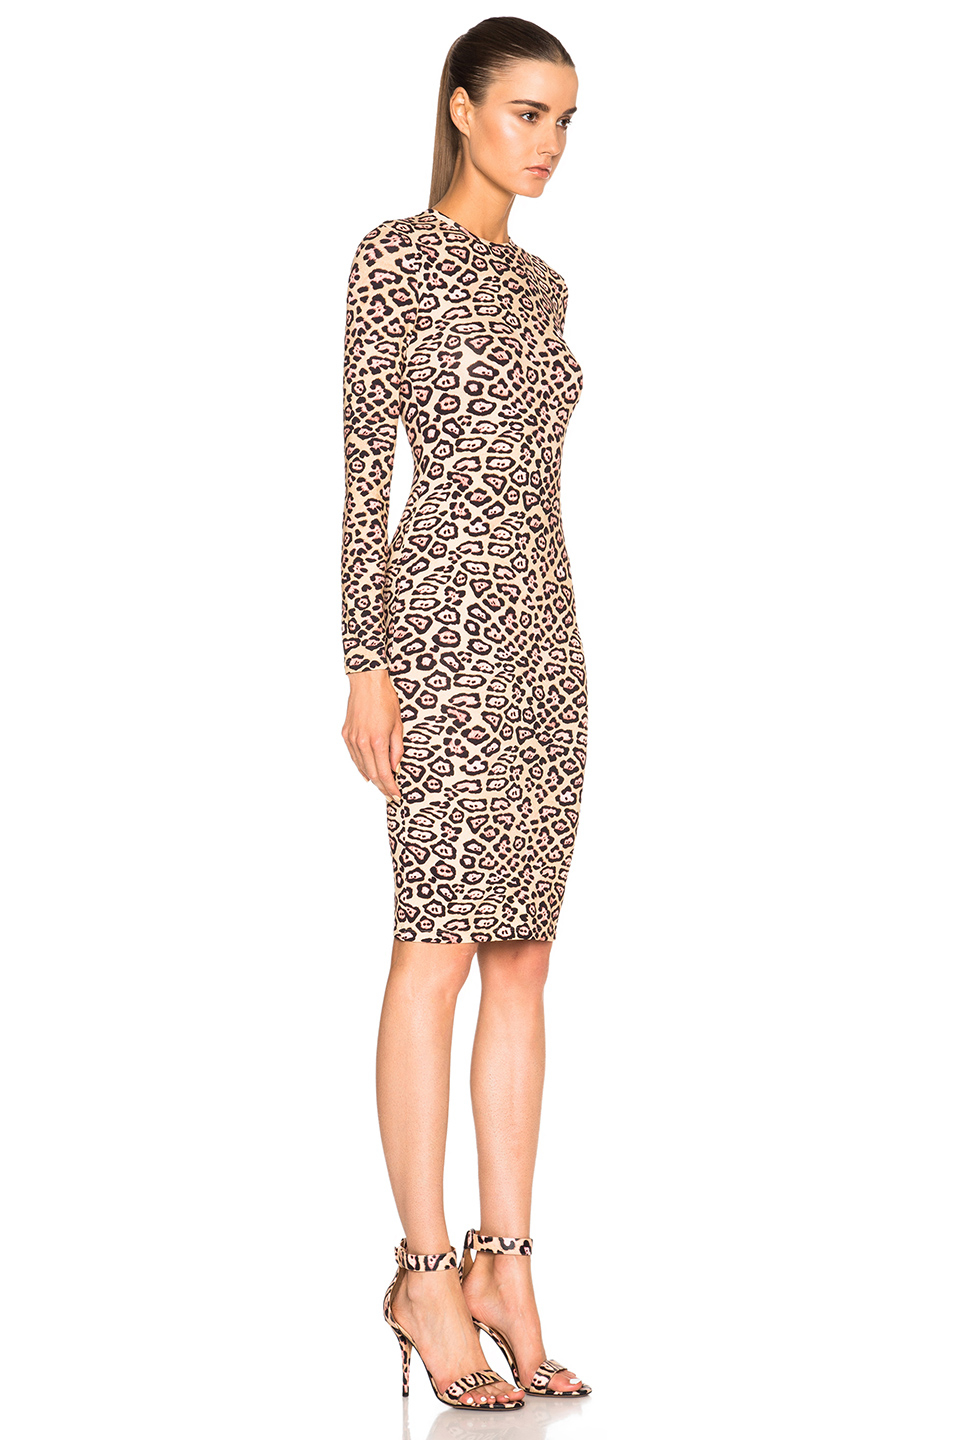 """LONG ANIMAL PRINT DRESS Details. Tan - / Dress with shirt collar and long sleeves with buttoned cuffs. Front button closure and tie detail at waist. MODEL HEIGHT: 5' 10"""" ( cm) 2. Choose a size Select a size. XS. S. M. L. XL. XXL. Size guide. 3. Add to cart."""